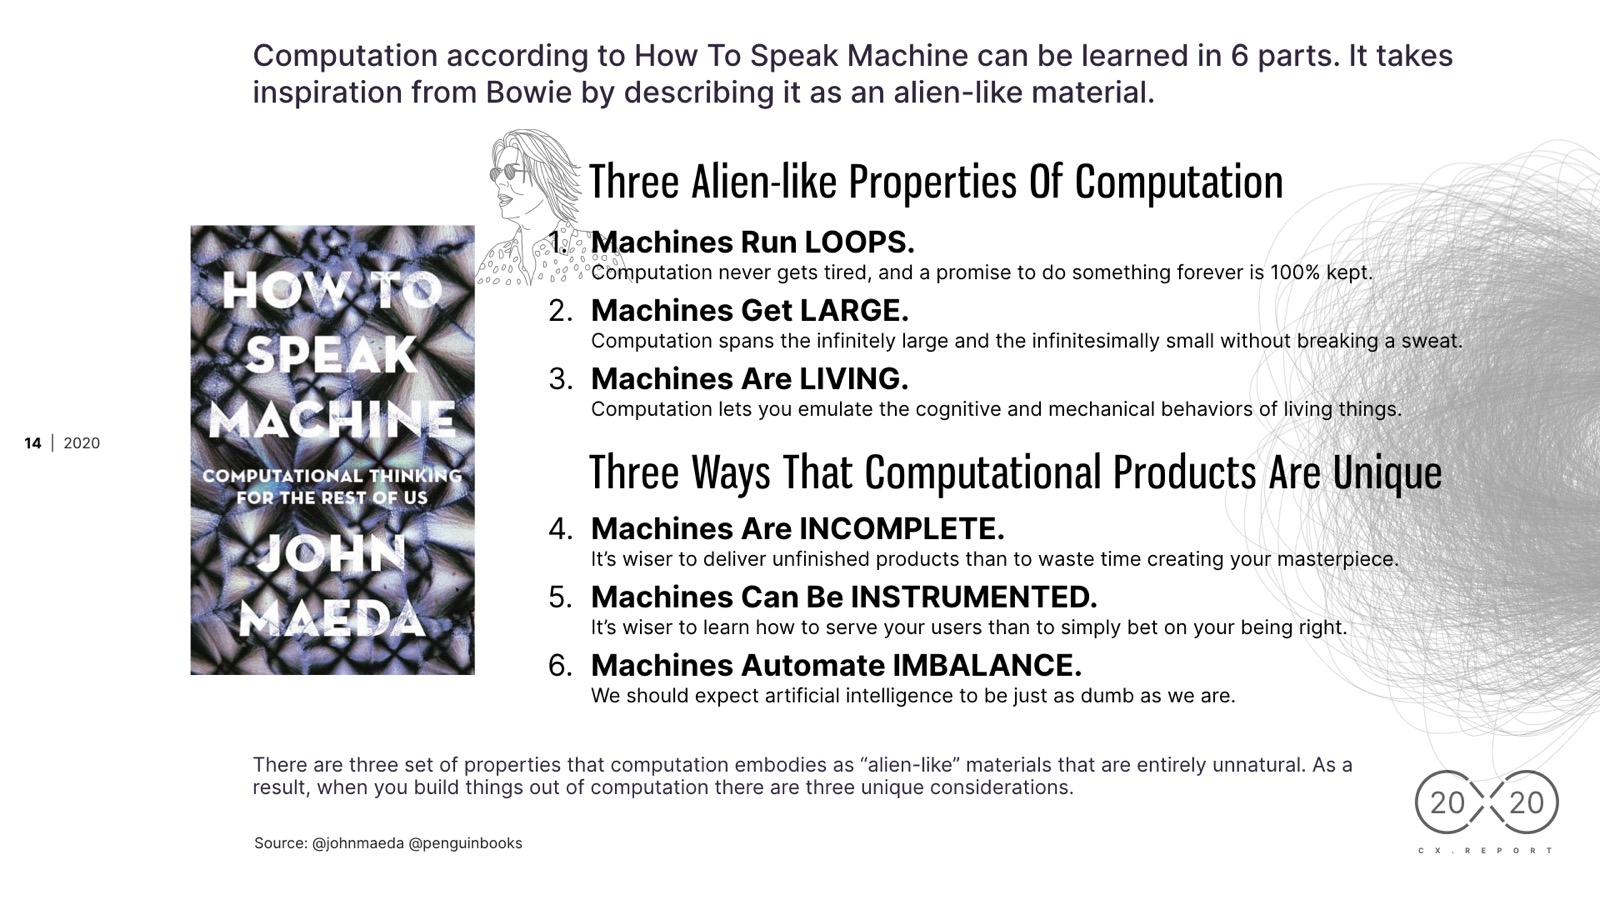 Overview of How To Speak Machine book consistent with what's at howtospeakmachine.com